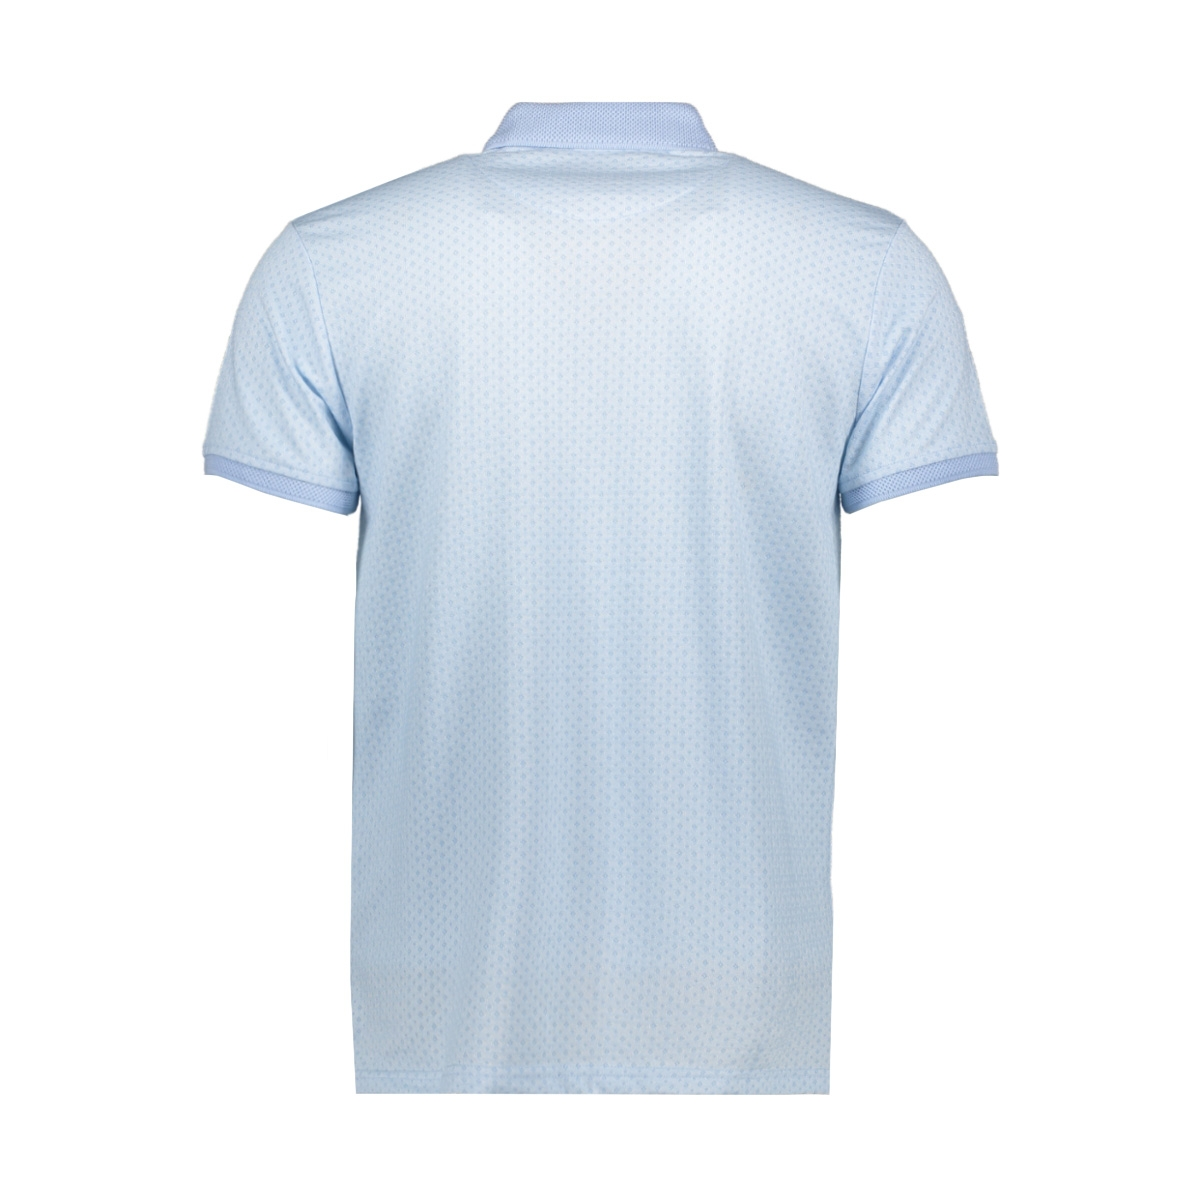 polo shirt 22133 gabbiano polo blue